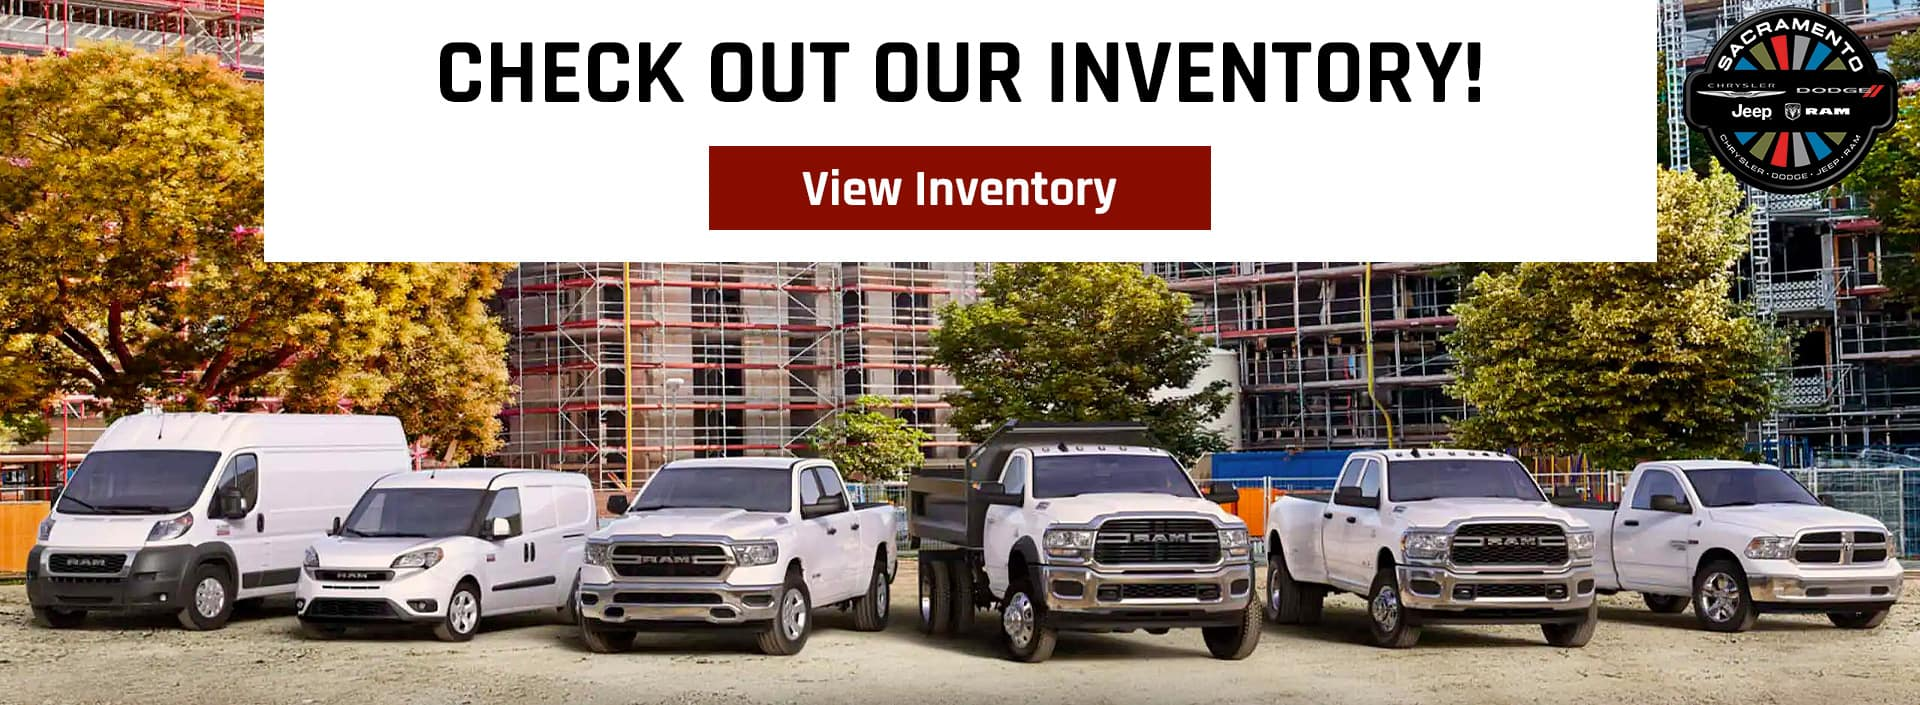 Check Out Our Inventory!